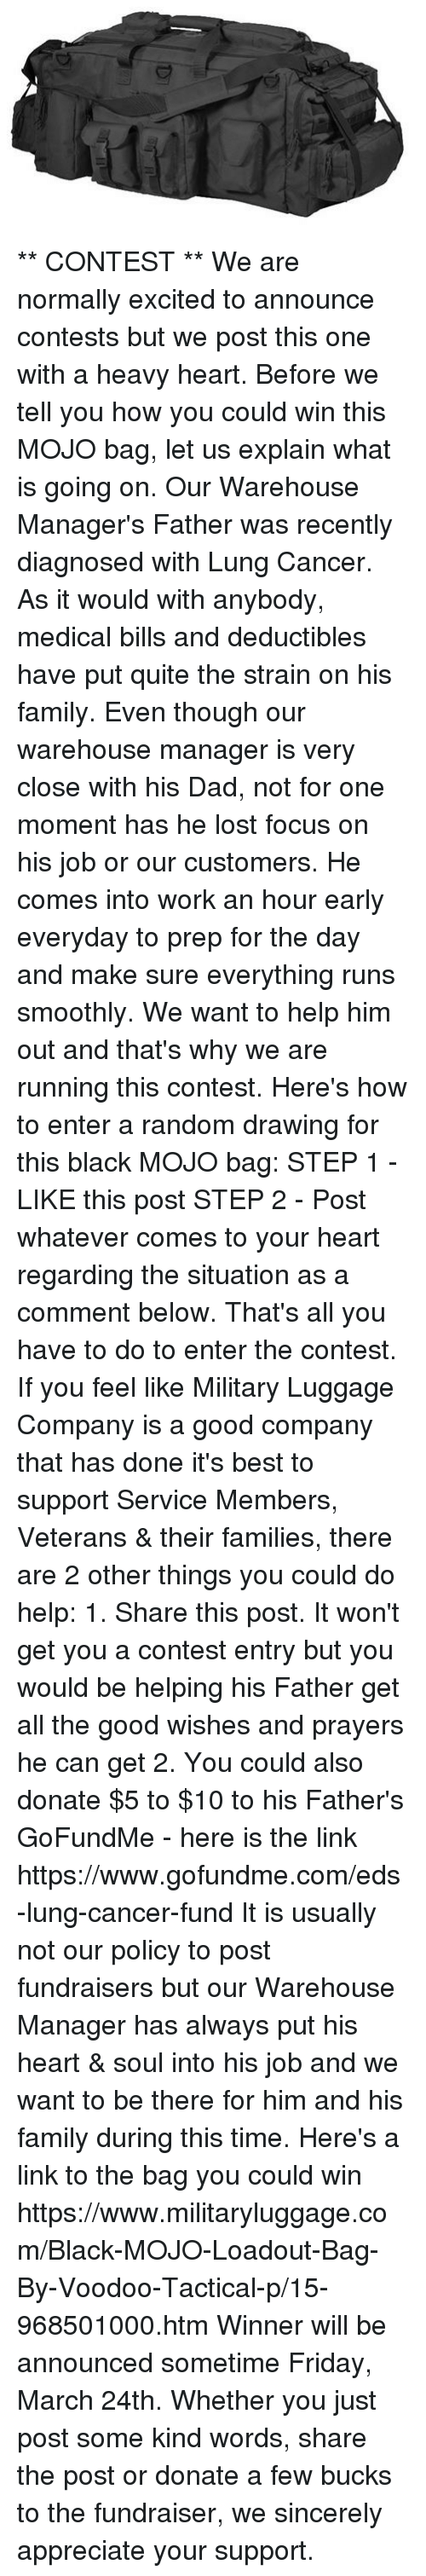 Memes, 🤖, and The Link: D1  D ** CONTEST **  We are normally excited to announce contests but we post this one with a heavy heart.  Before we tell you how you could win this MOJO bag, let us explain what is going on.  Our Warehouse Manager's Father was recently diagnosed with Lung Cancer.  As it would with anybody, medical bills and deductibles have put quite the strain on his family.  Even though our warehouse manager is very close with his Dad, not for one moment has he lost focus on his job or our customers.  He comes into work an hour early everyday to prep for the day and make sure everything runs smoothly.  We want to help him out and that's why we are running this contest.  Here's how to enter a random drawing for this black MOJO bag:  STEP 1 - LIKE this post  STEP 2 - Post whatever comes to your heart regarding the situation as a comment below.  That's all you have to do to enter the contest.  If you feel like Military Luggage Company is a good company that has done it's best to support Service Members, Veterans & their families, there are 2 other things you could do help:  1.  Share this post.  It won't get you a contest entry but you would be helping his Father get all the good wishes and prayers he can get    2.  You could also donate $5 to $10 to his Father's GoFundMe - here is the link https://www.gofundme.com/eds-lung-cancer-fund  It is usually not our policy to post fundraisers but our Warehouse Manager has always put his heart & soul into his job and we want to be there for him and his family during this time.  Here's a link to the bag you could win https://www.militaryluggage.com/Black-MOJO-Loadout-Bag-By-Voodoo-Tactical-p/15-968501000.htm  Winner will be announced sometime Friday, March 24th.  Whether you just post some kind words, share the post or donate a few bucks to the fundraiser, we sincerely appreciate your support.